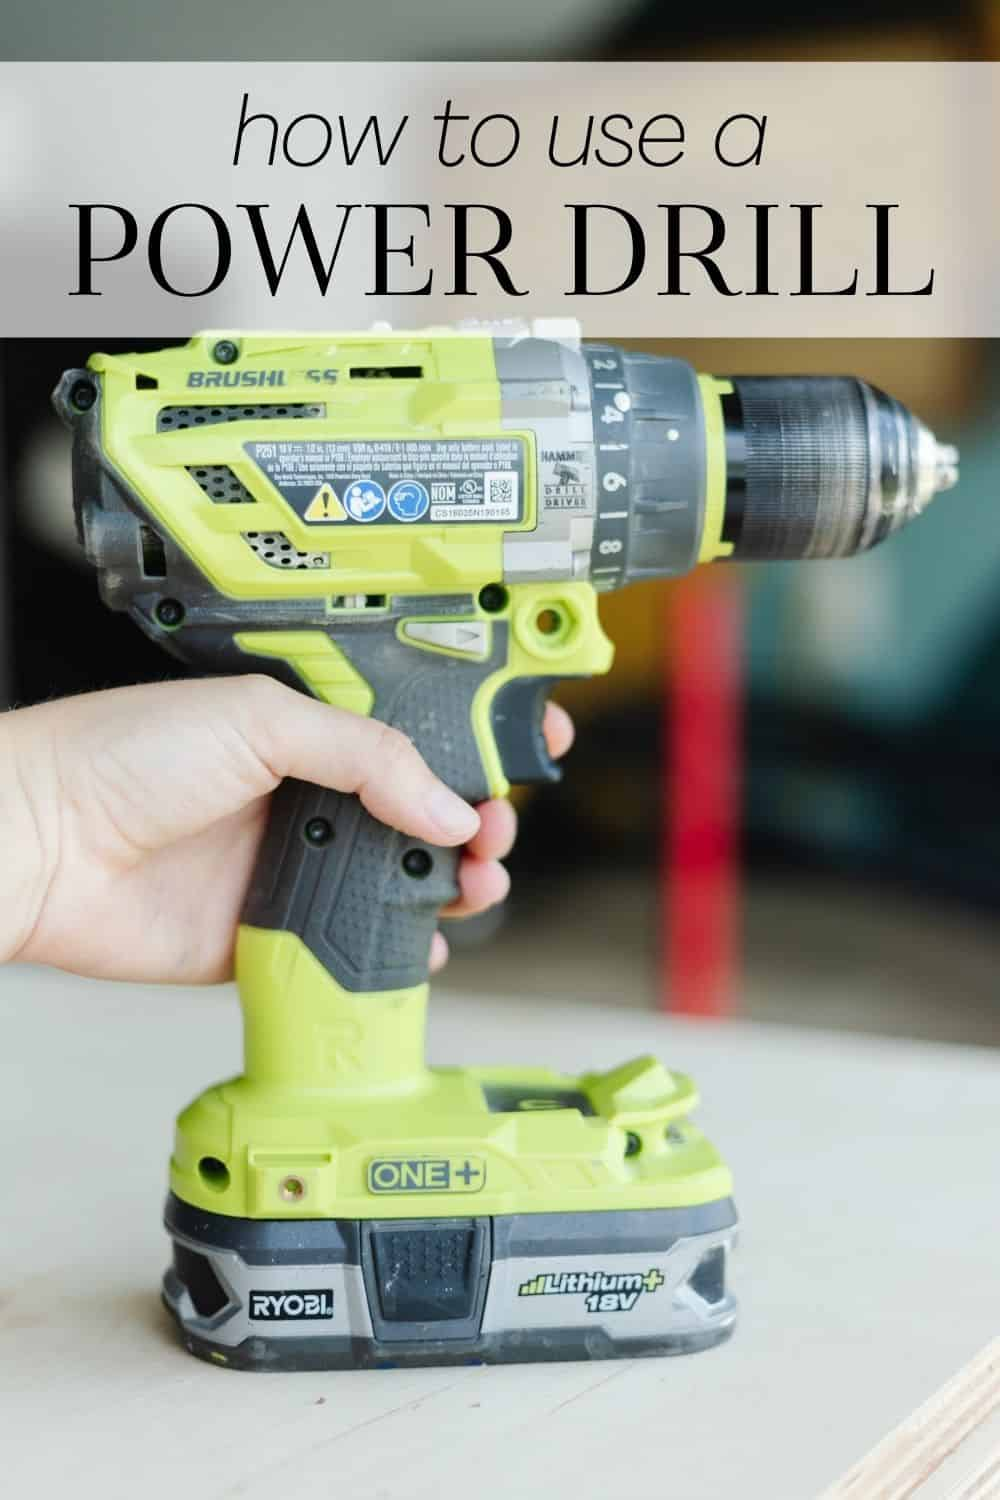 A close up of a Ryobi drill with a woman's hand holding it. The text overlay says